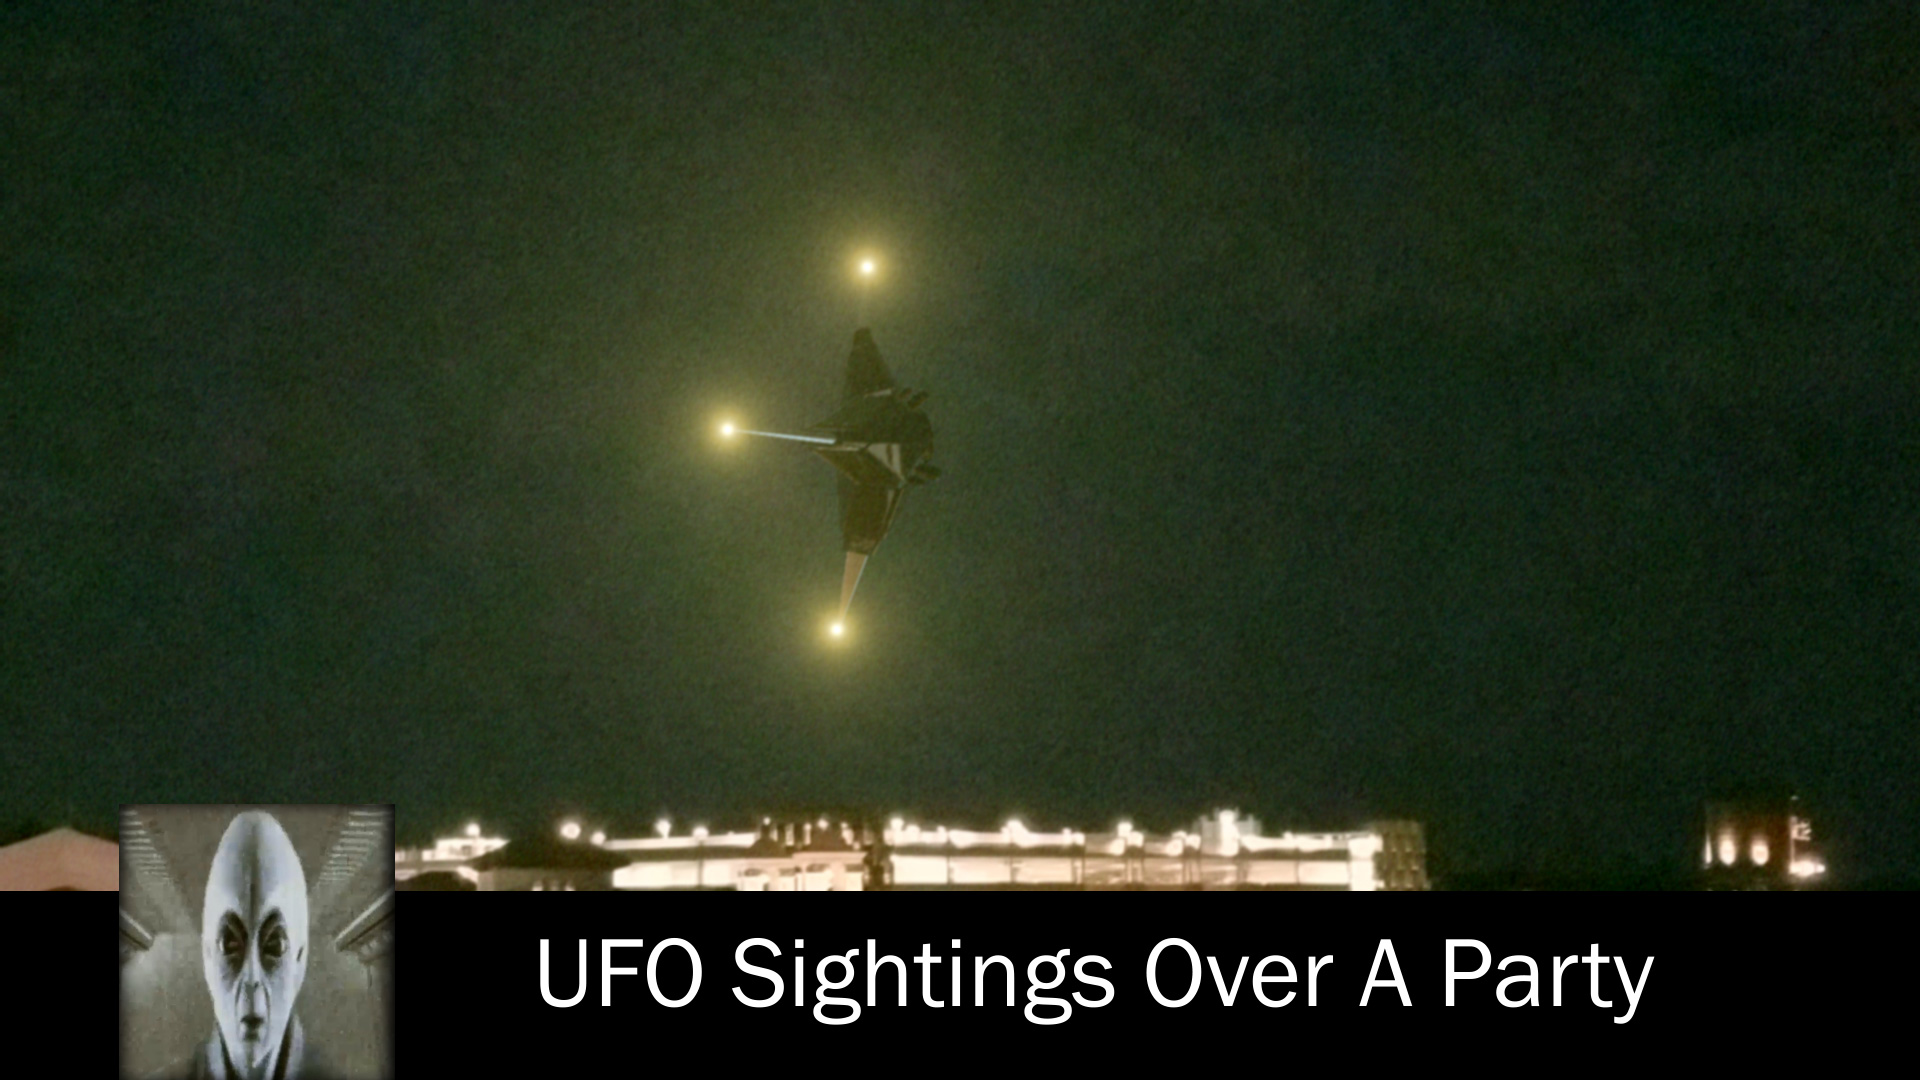 UFO Sightings At A Party July 12th 2017 | iufosightings